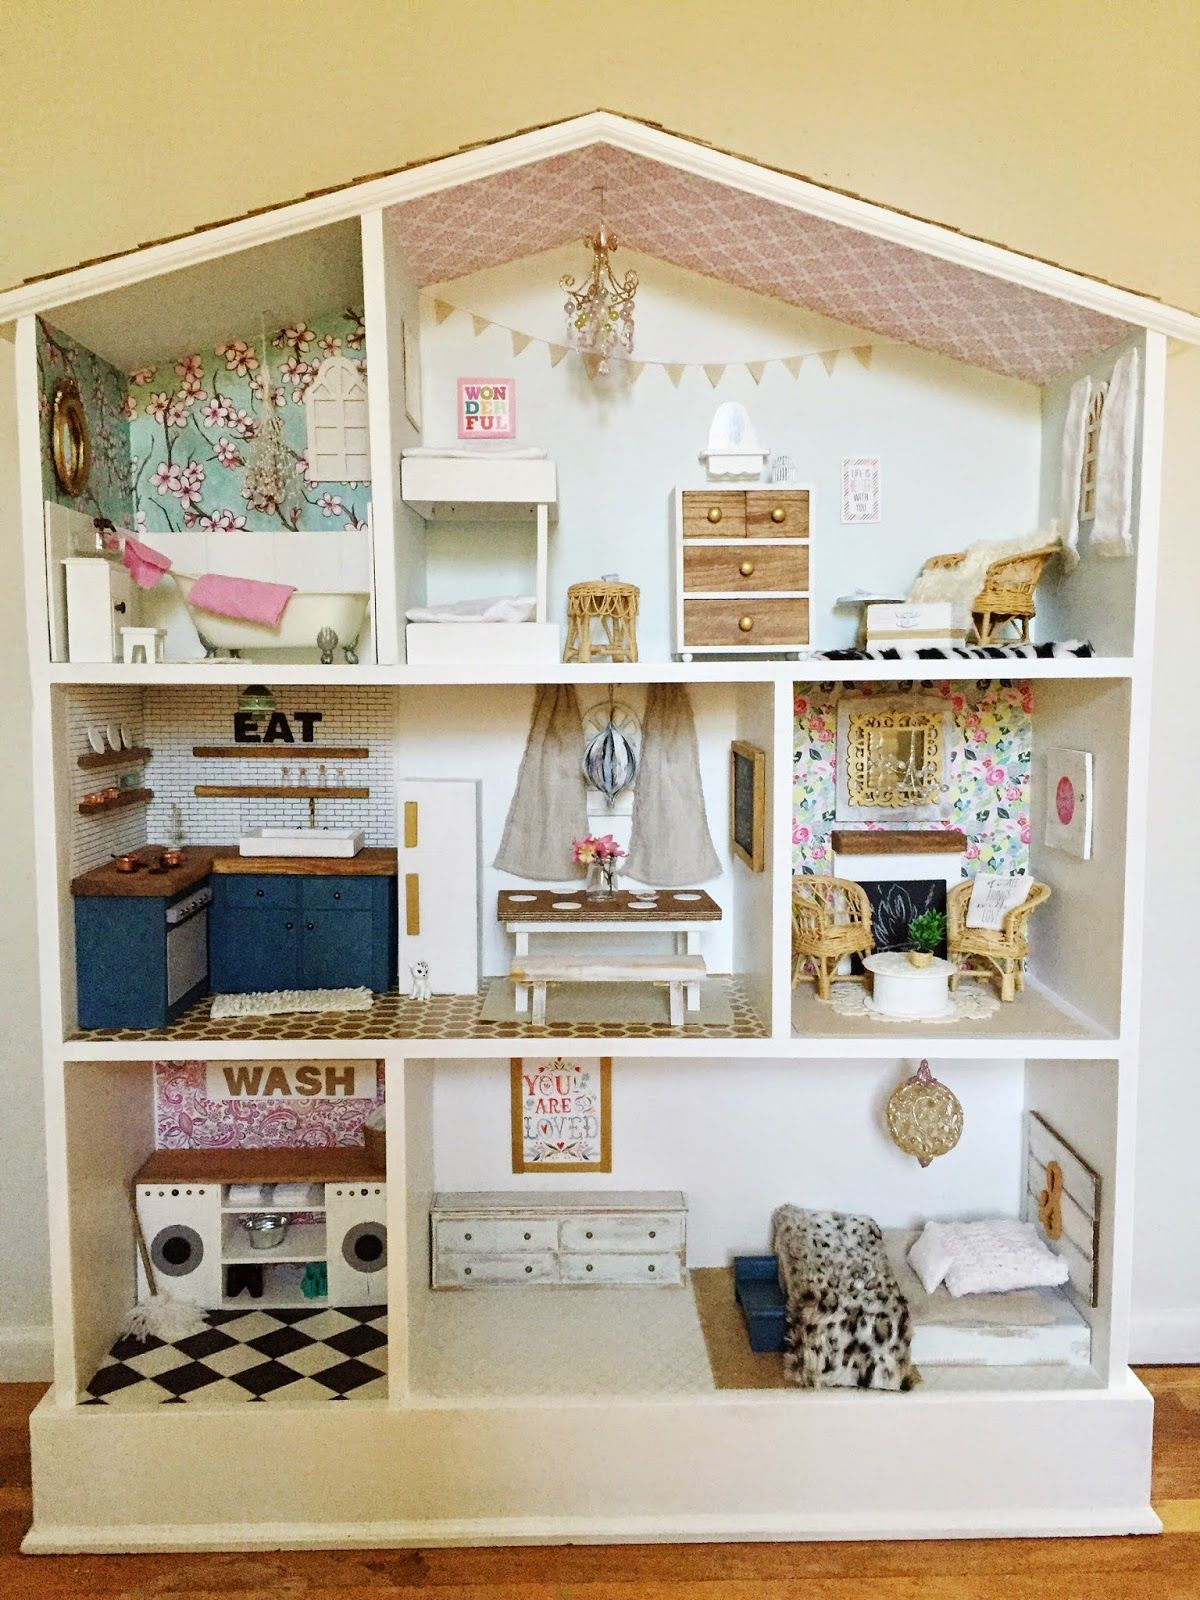 Make Your Own Barbie Furniture Property Amazing Diy Barbie House  Barbie House Barbie And Do It Yourself Design Decoration